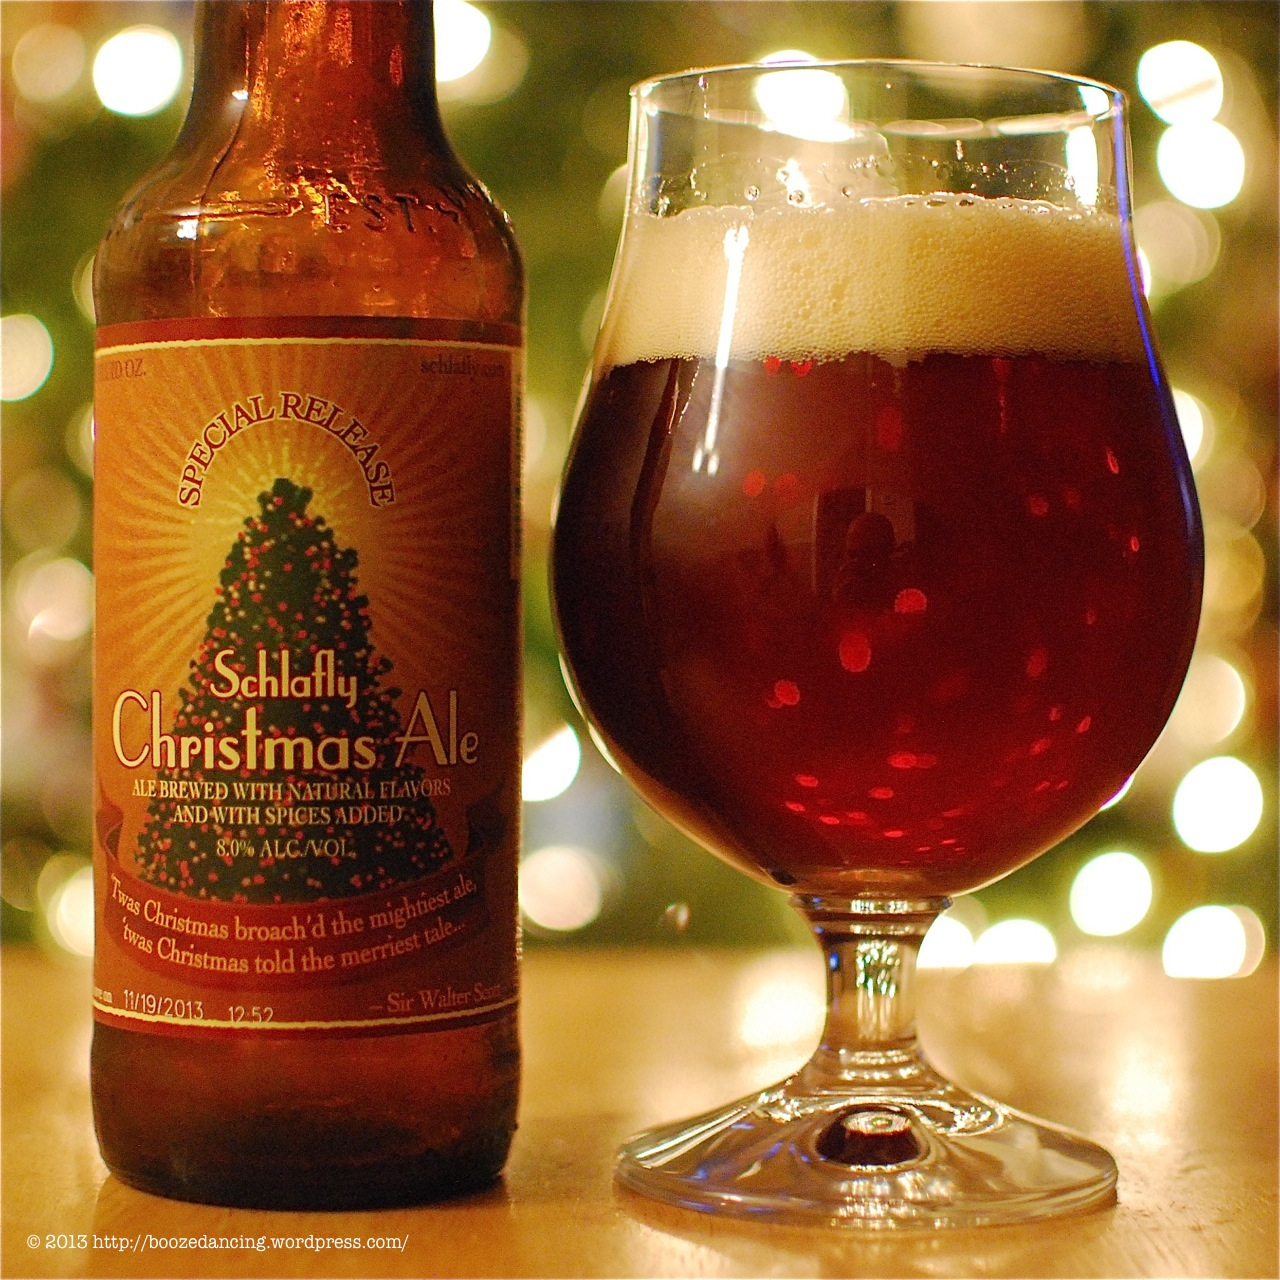 Schlafly Christmas Ale 2021 Have Yourself A Boozy Little Christmas It S Just The Booze Dancing